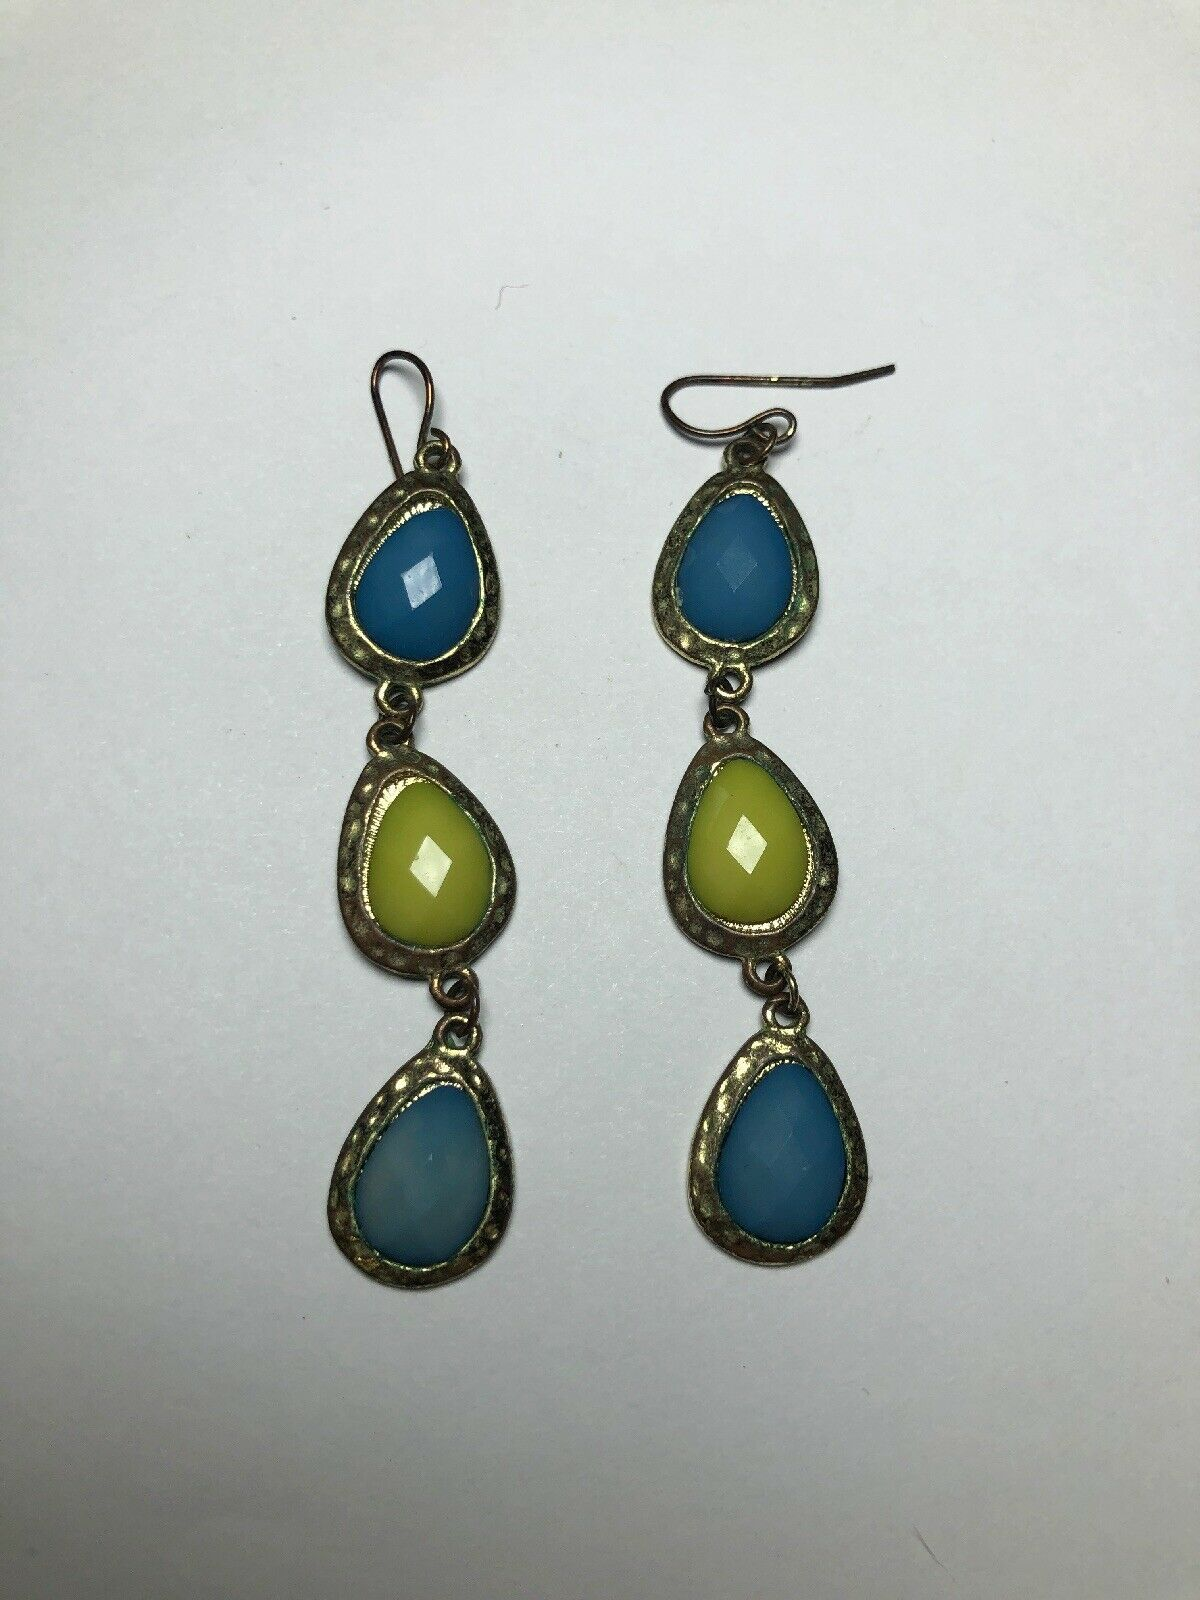 Primary image for Vintage Earrings Blue And Yellow Gems And Gold Tone Costume Jewelry